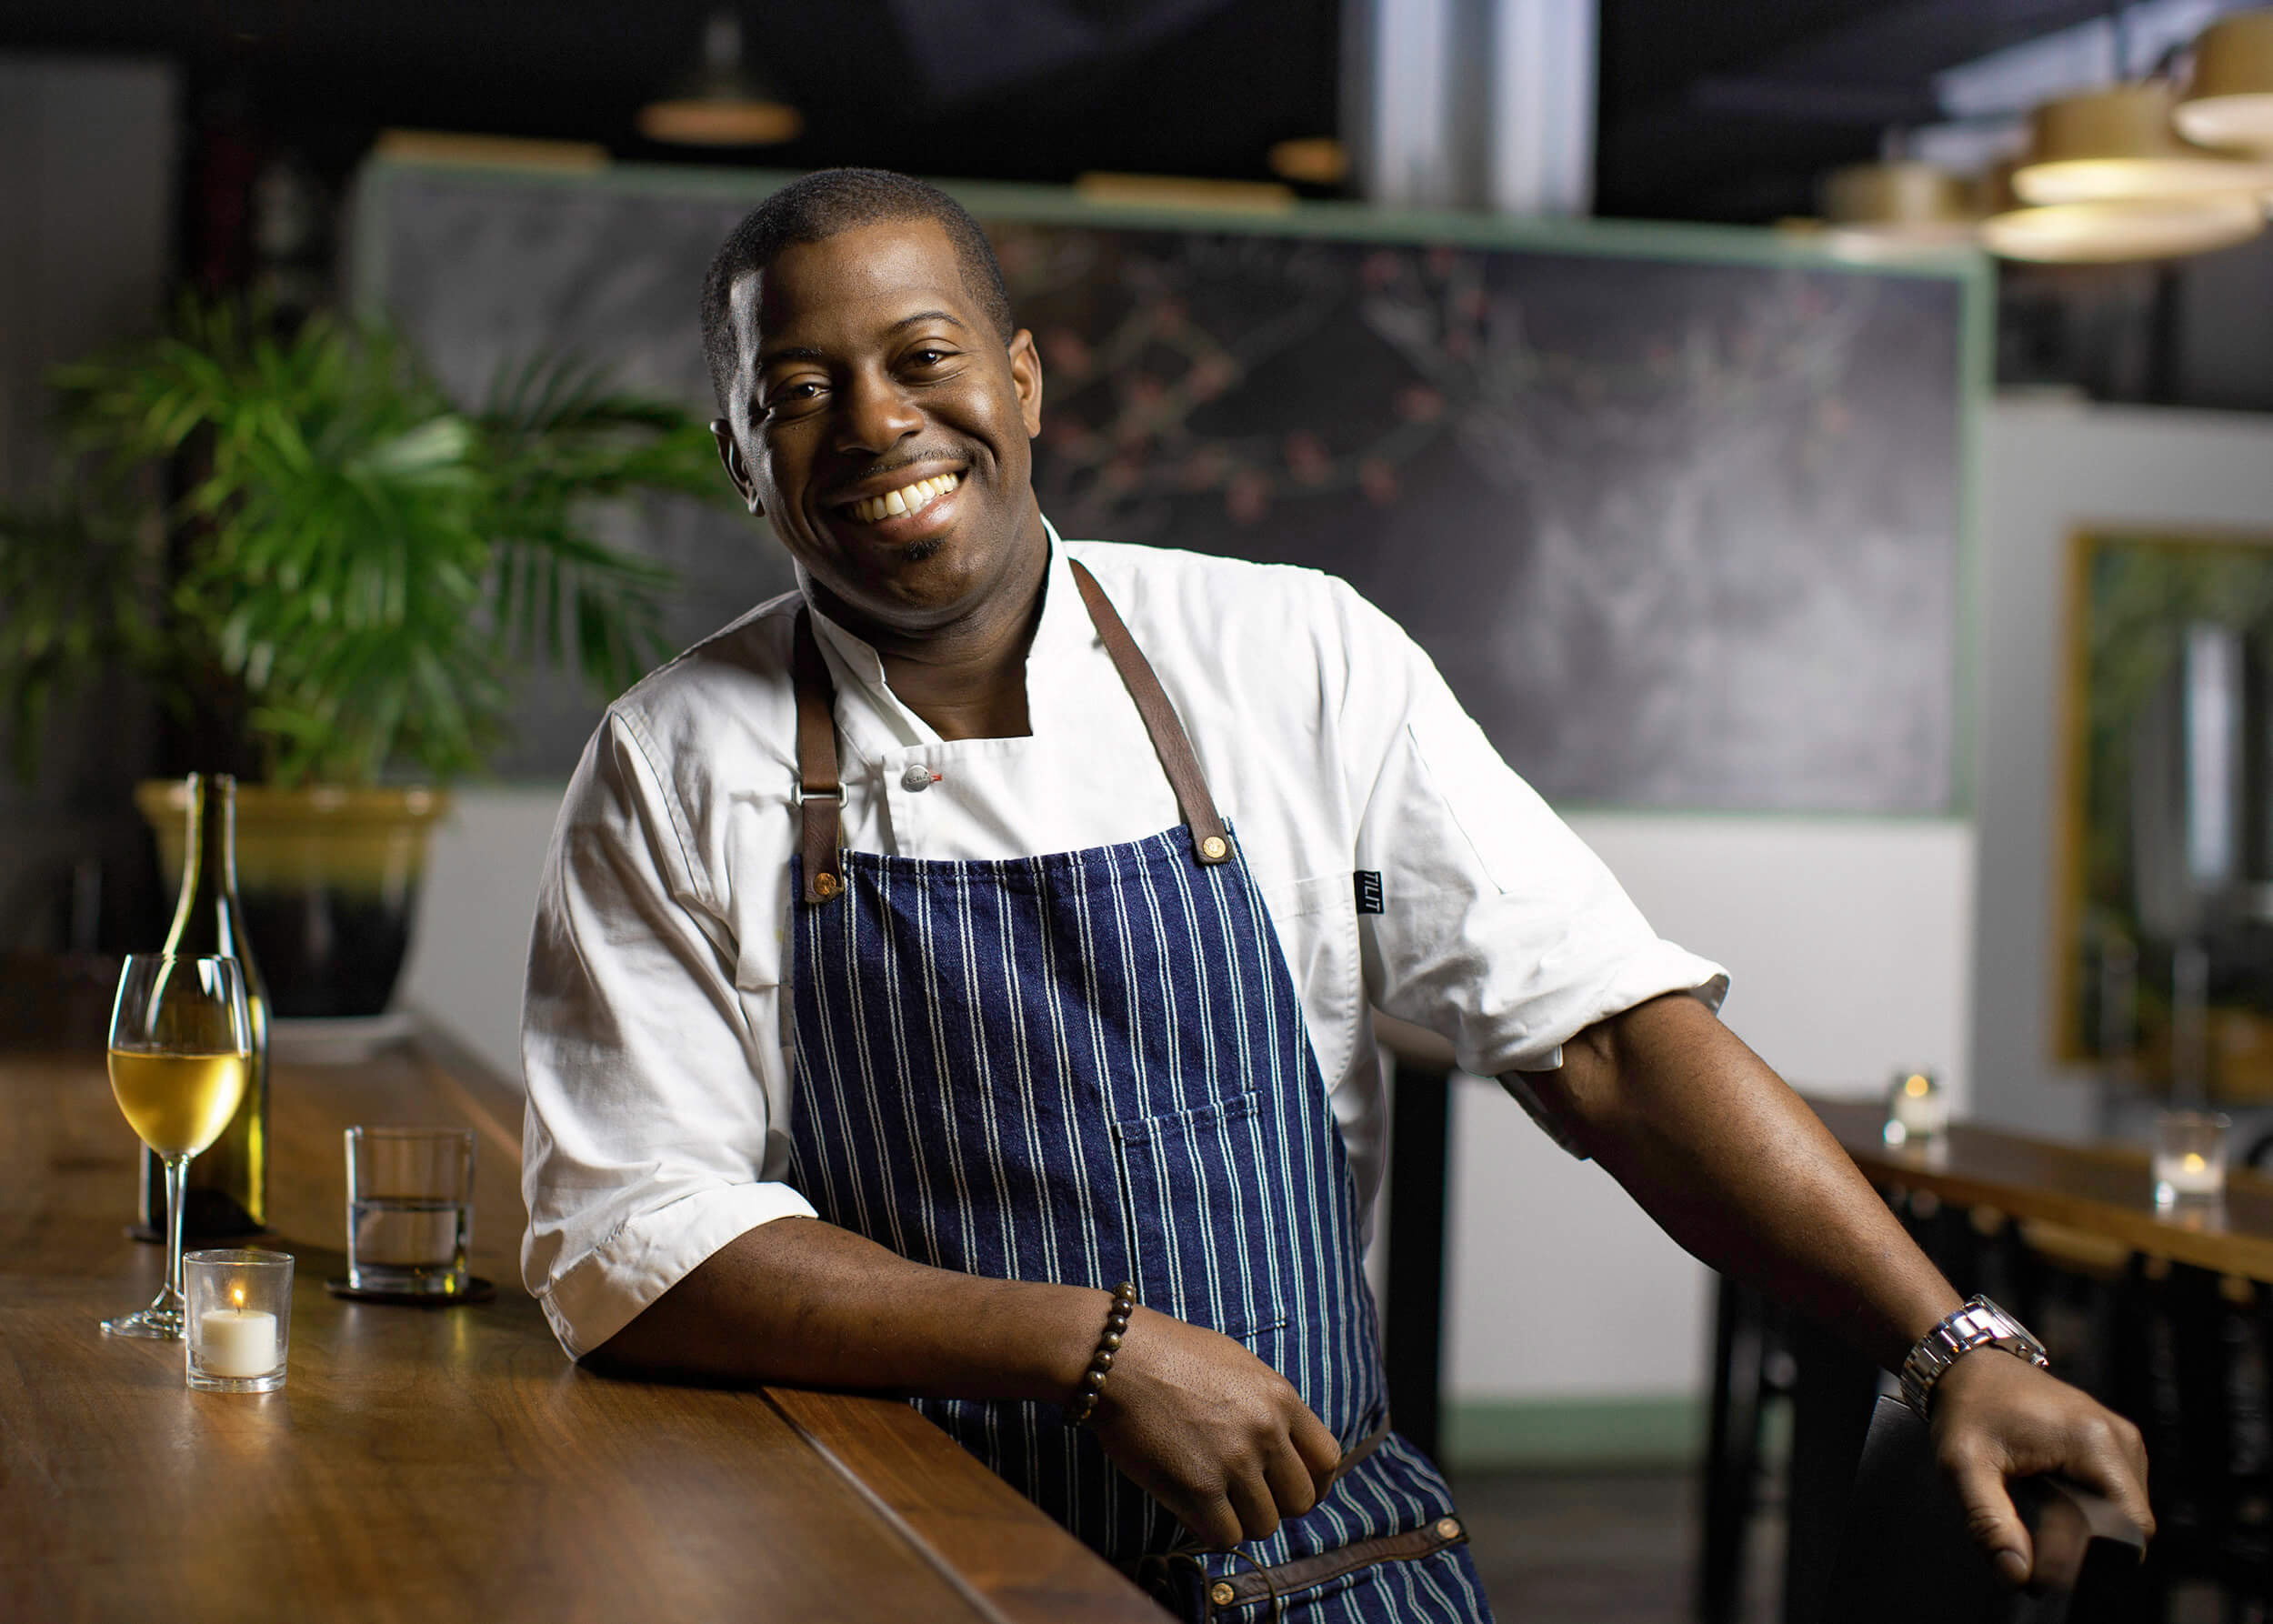 Portrait of chef Edouardo Jordan